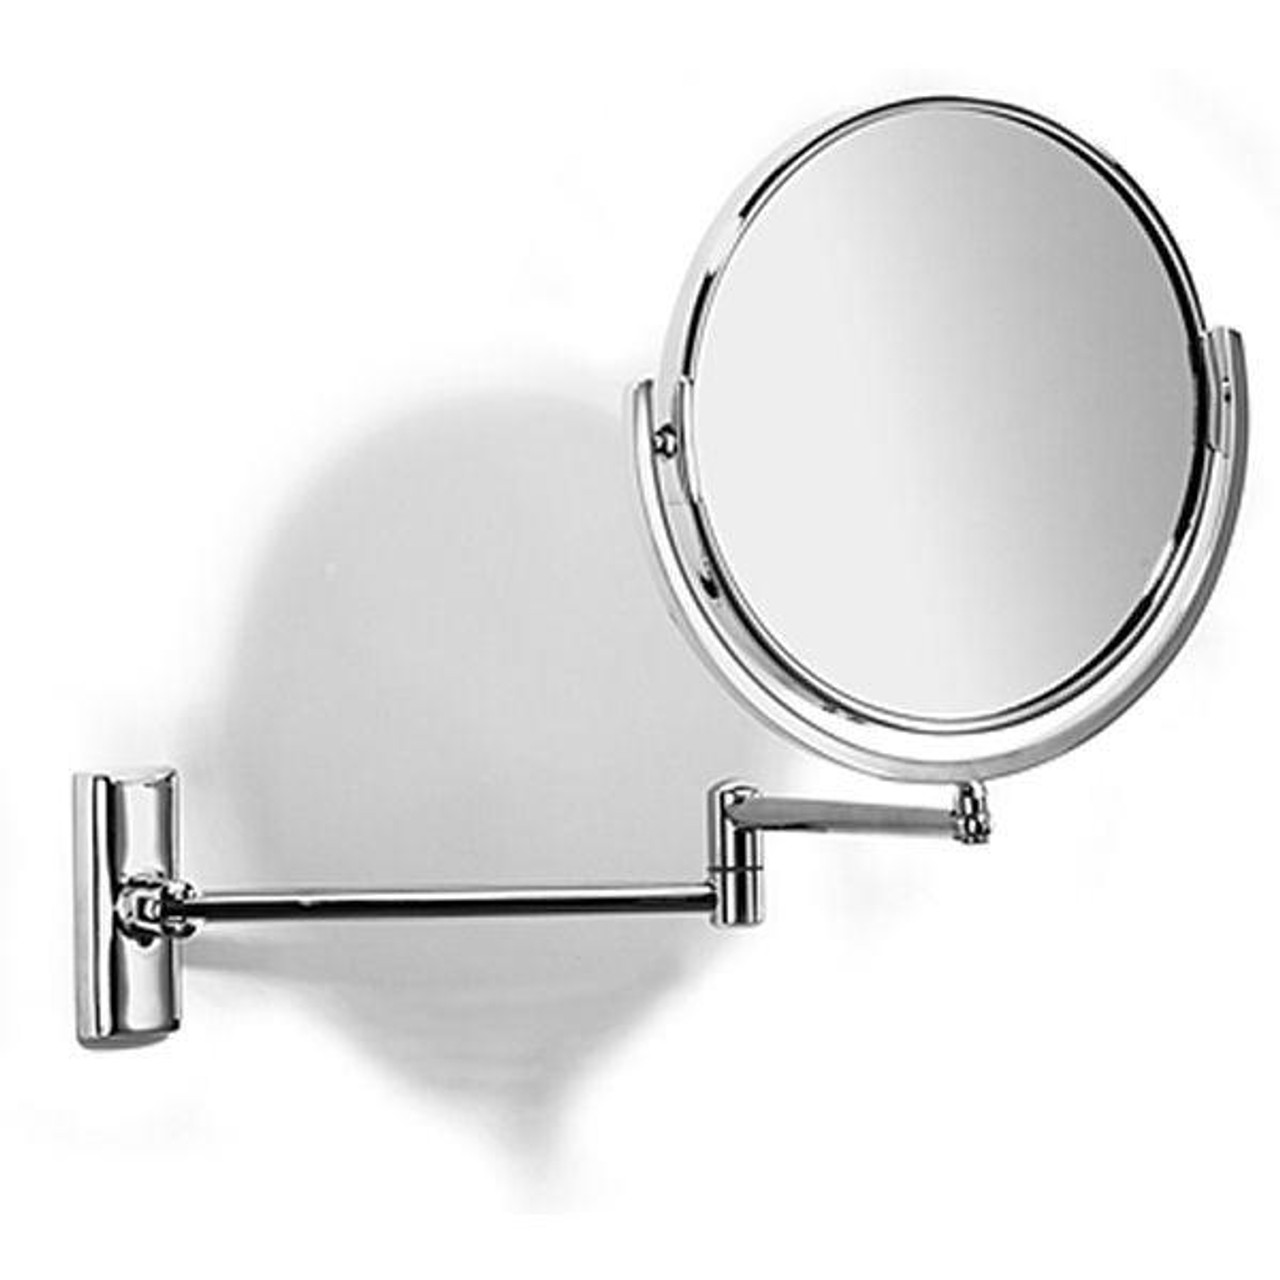 Chrome Plated Samuel Heath Novis Double Arm Pivotal Mirror Plain/Magnifying L114